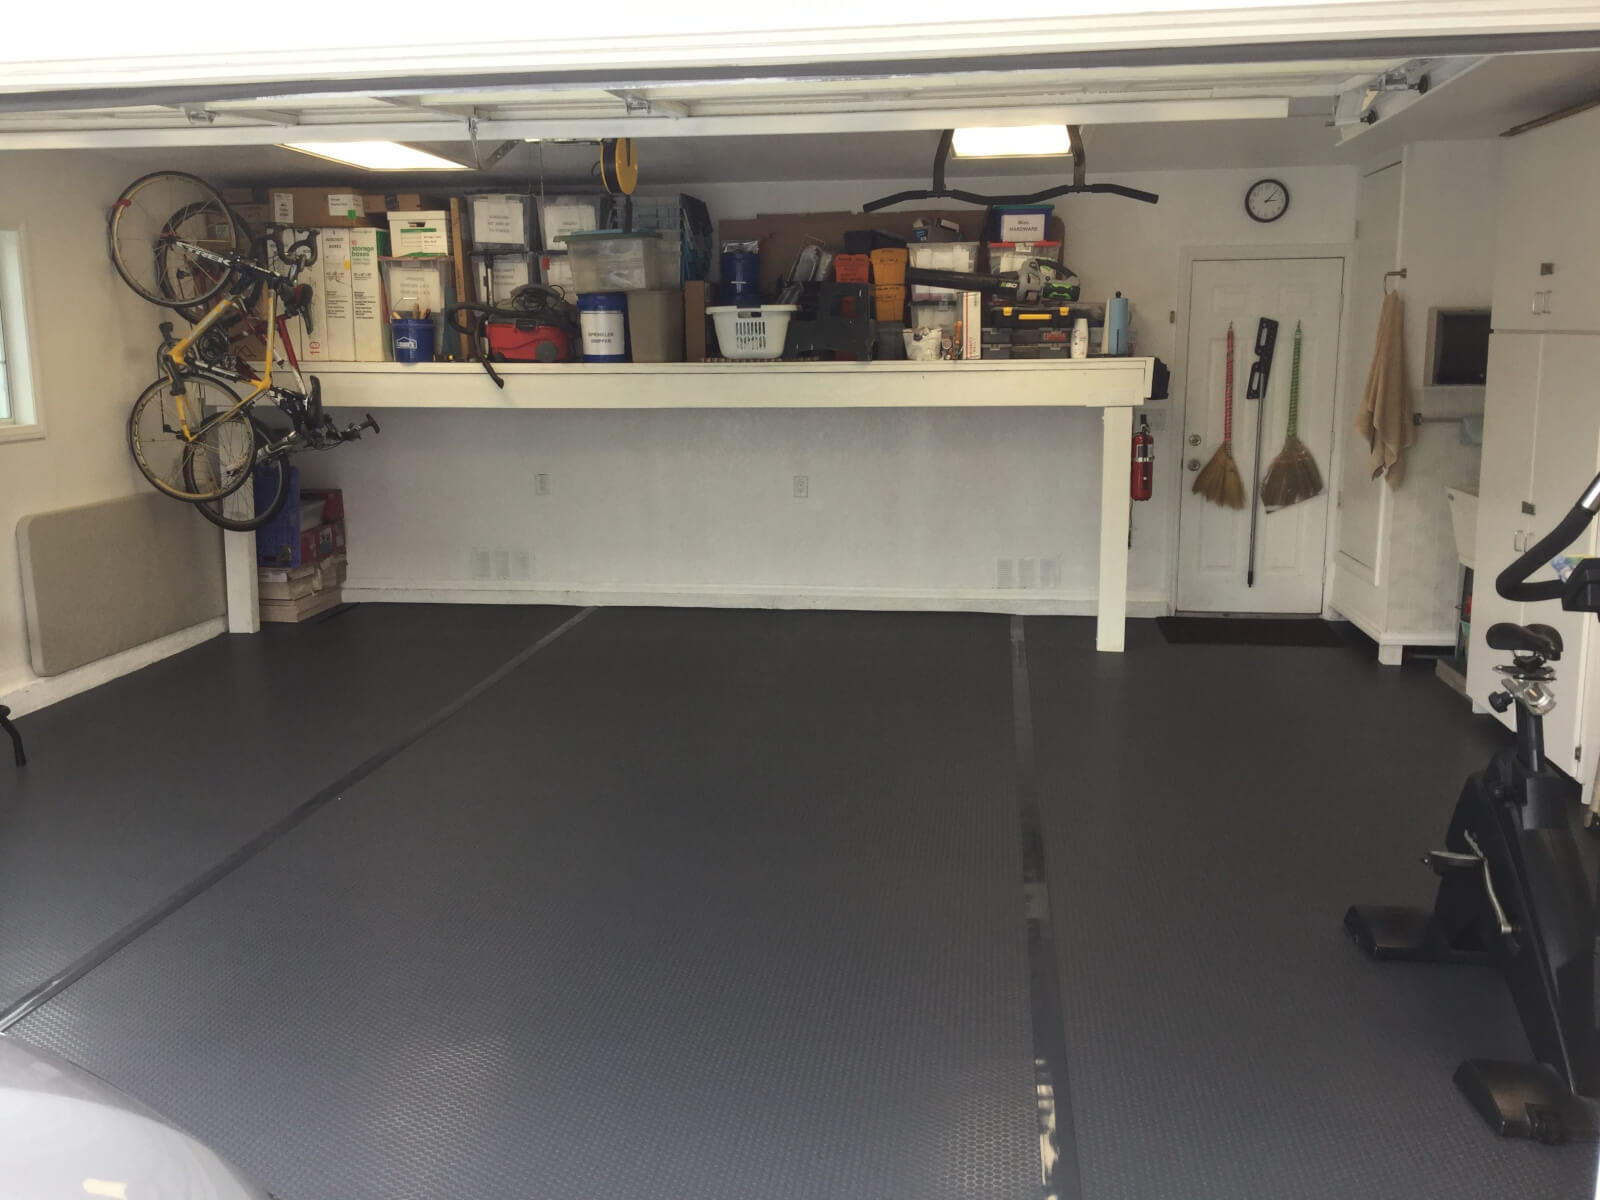 coating concrete sealers door featuring work g and designs floors horizontal by garage coatings jon painting in poly after our installed floor kelly contractors